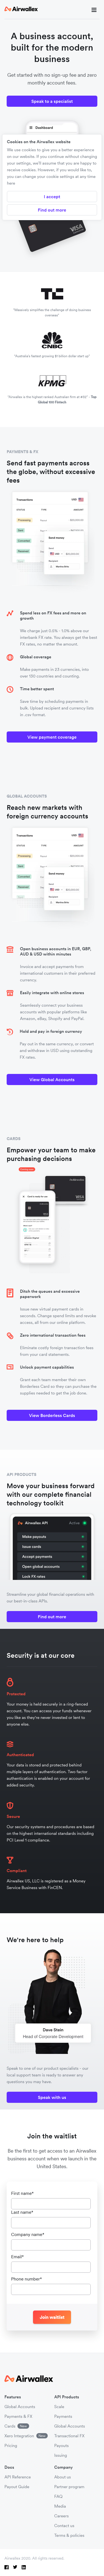 Example of Design for Finance, Mobile Landing Page by airwallex.com-V2 | Mobile Landing Page Design